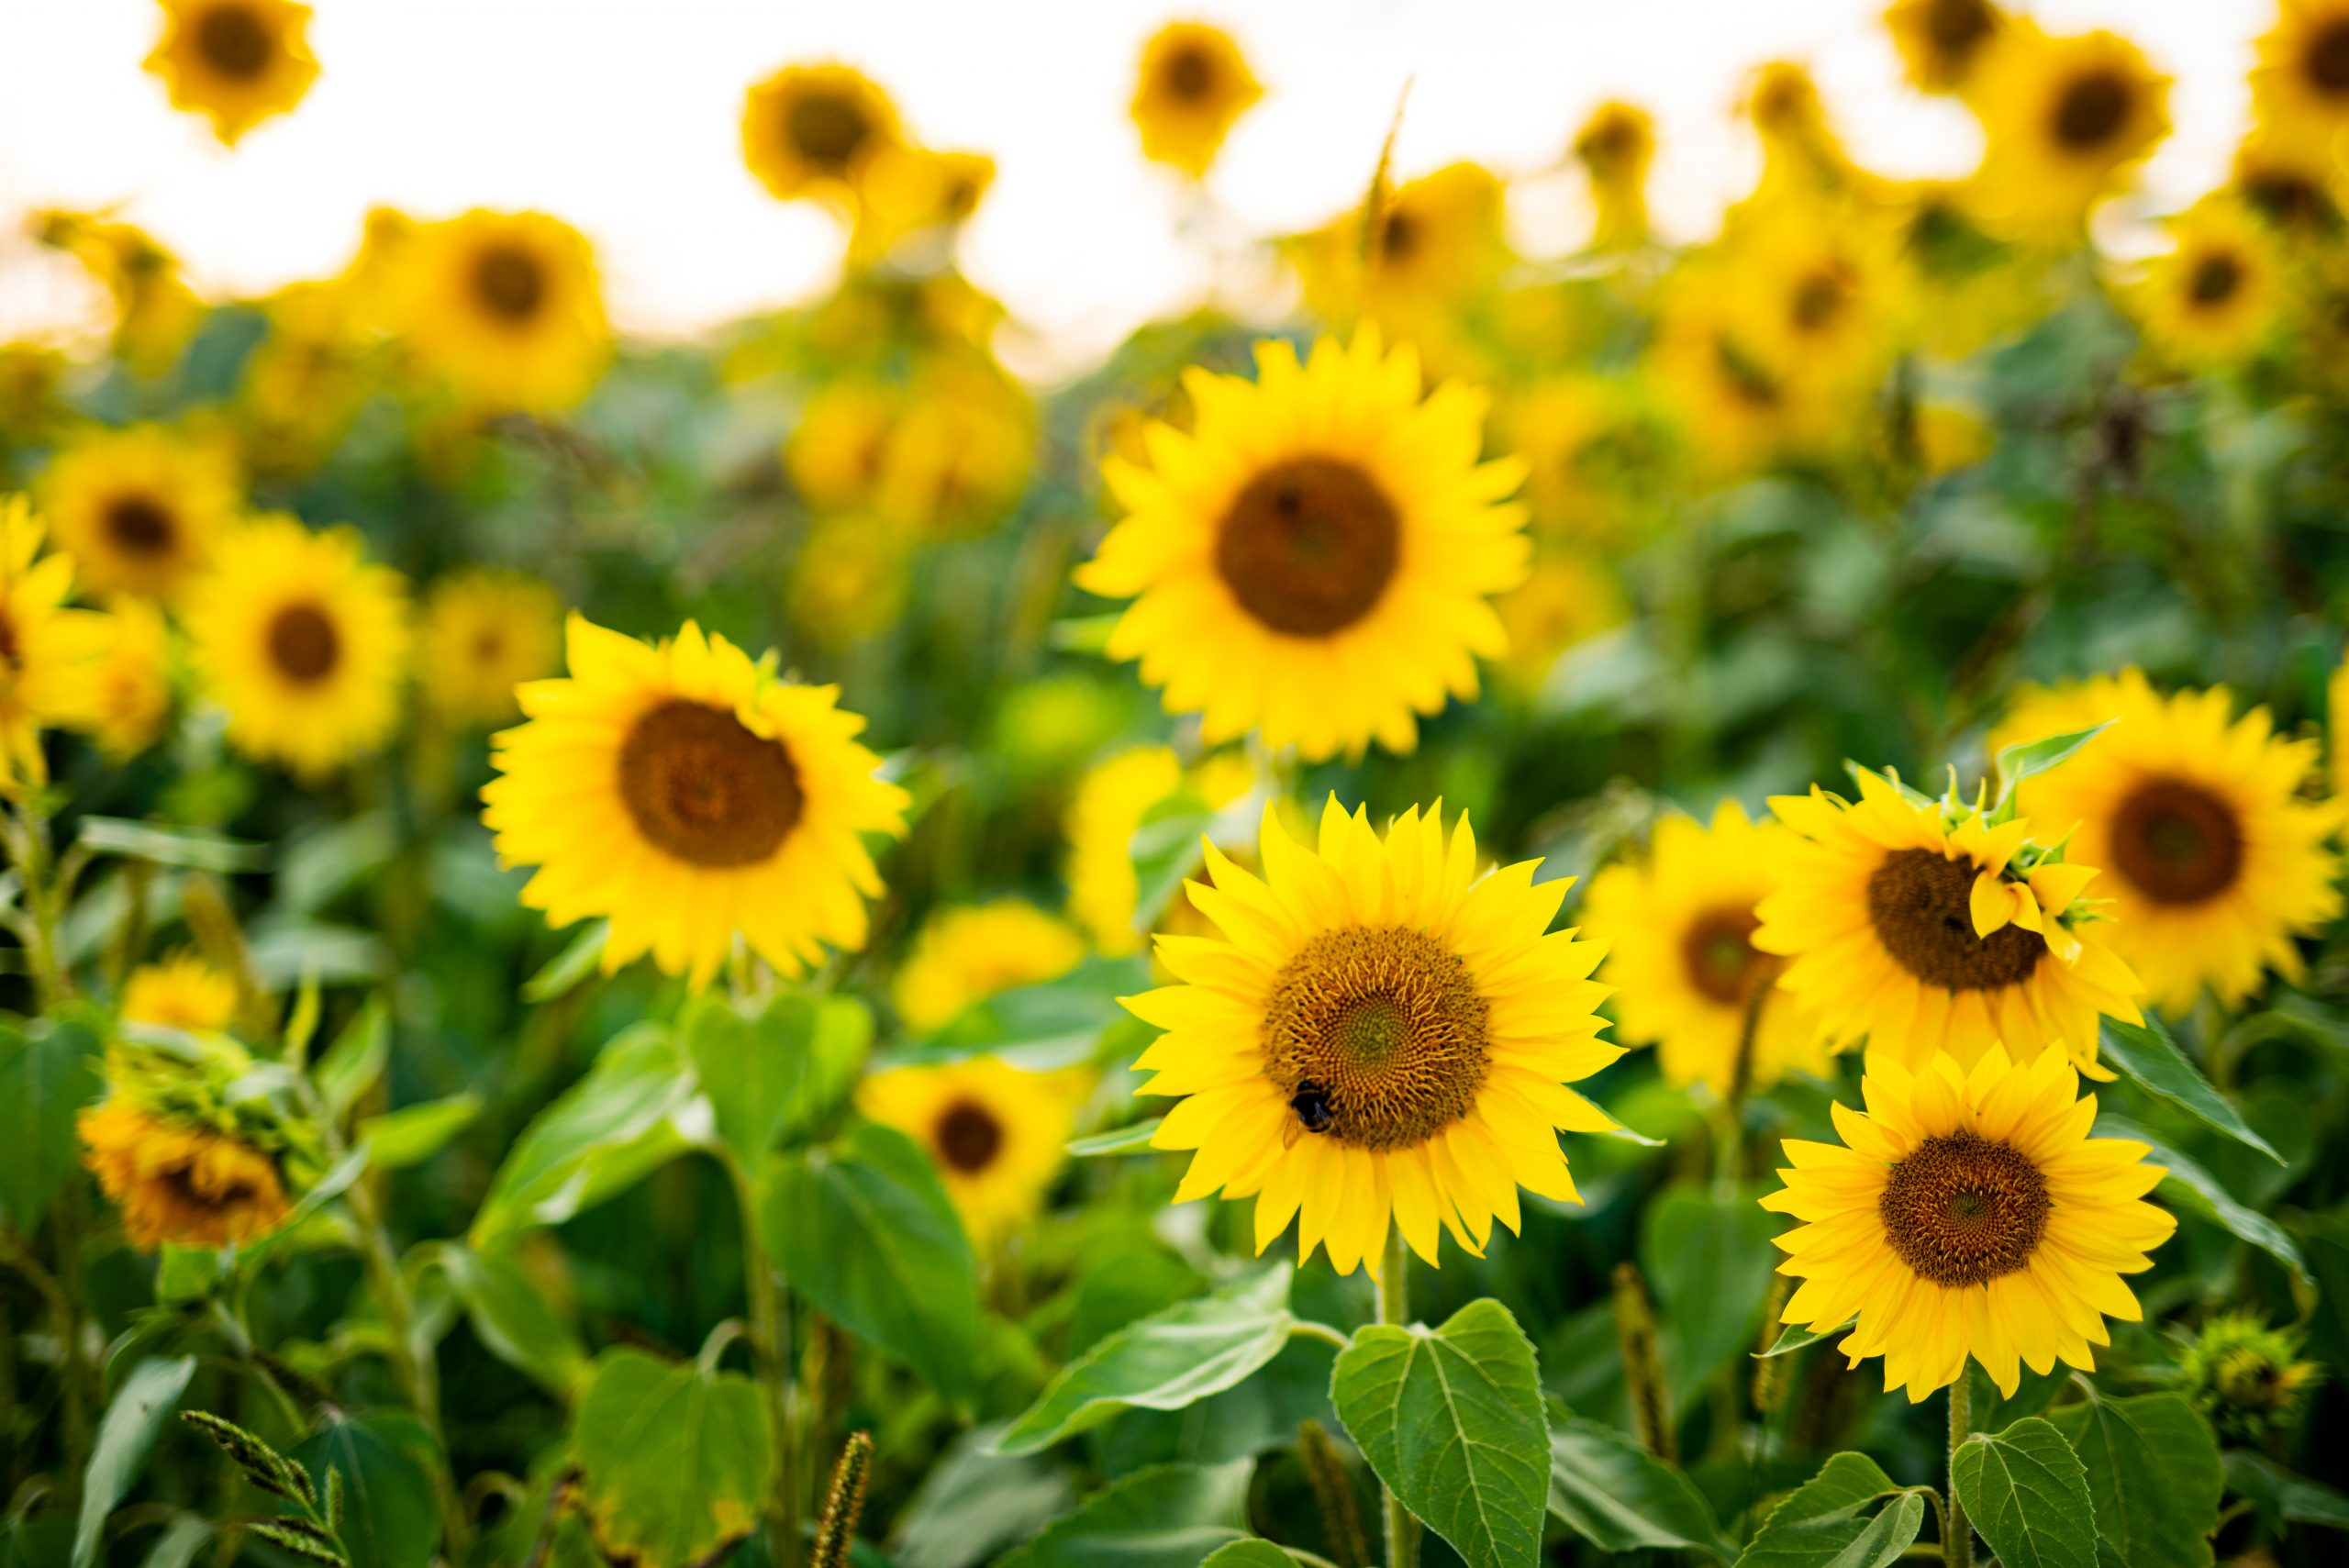 bright yellow sunflowers in a field